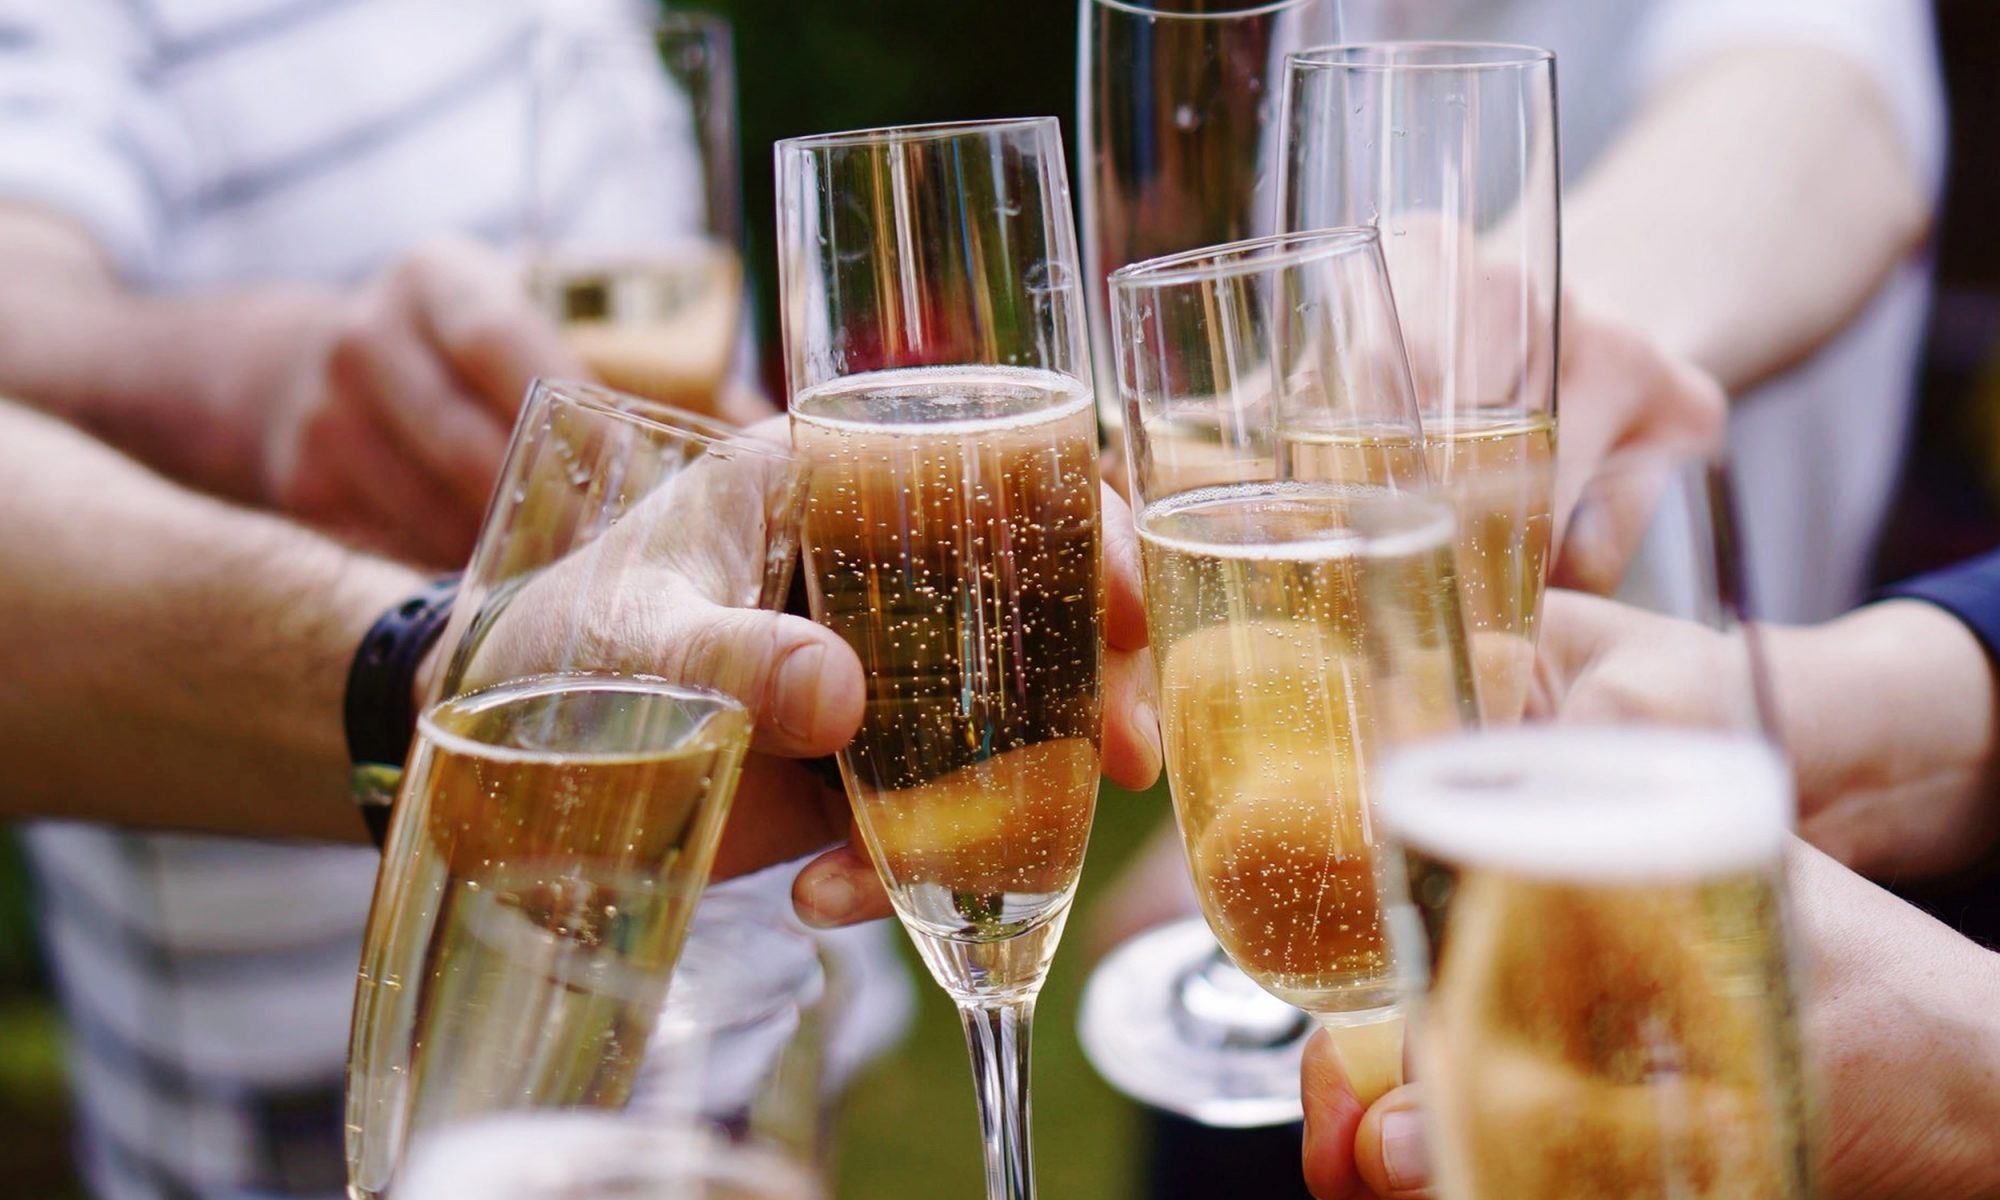 EC: These Sparkling Wines Give You the Best Bang for Your Buck